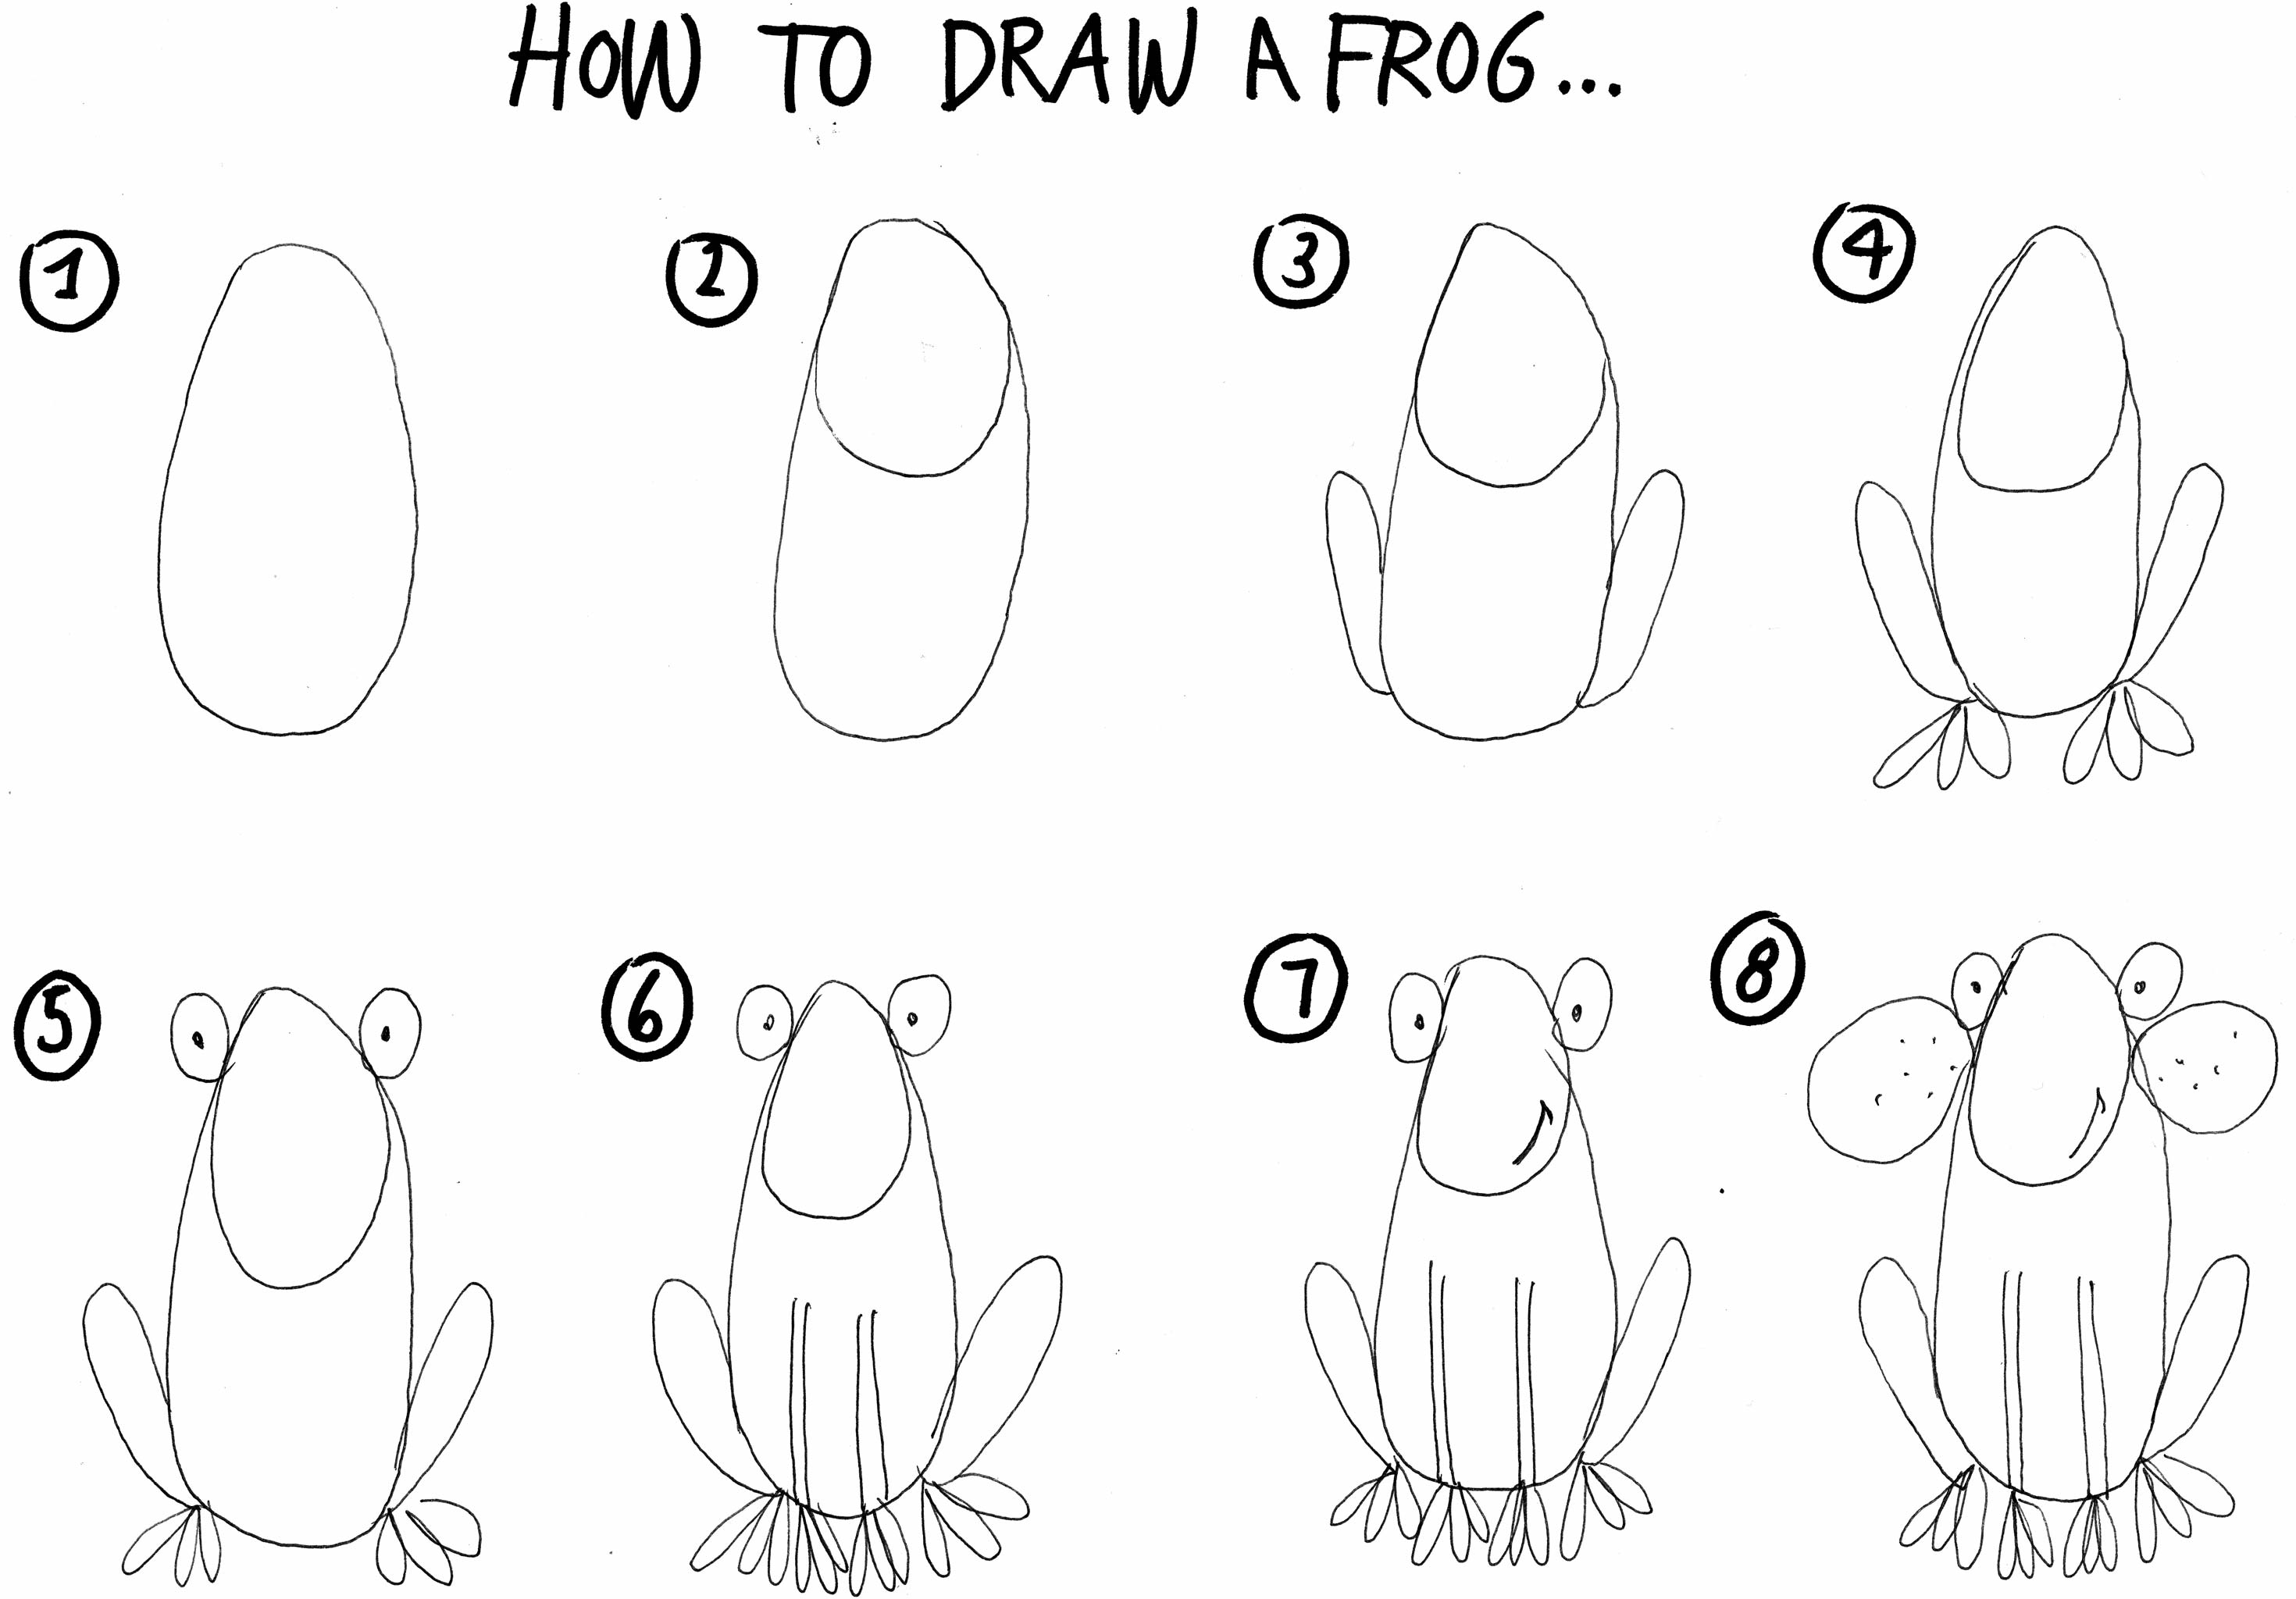 how to draw a frog easy how to draw animals for kids step by step with pencil do how draw frog to a easy